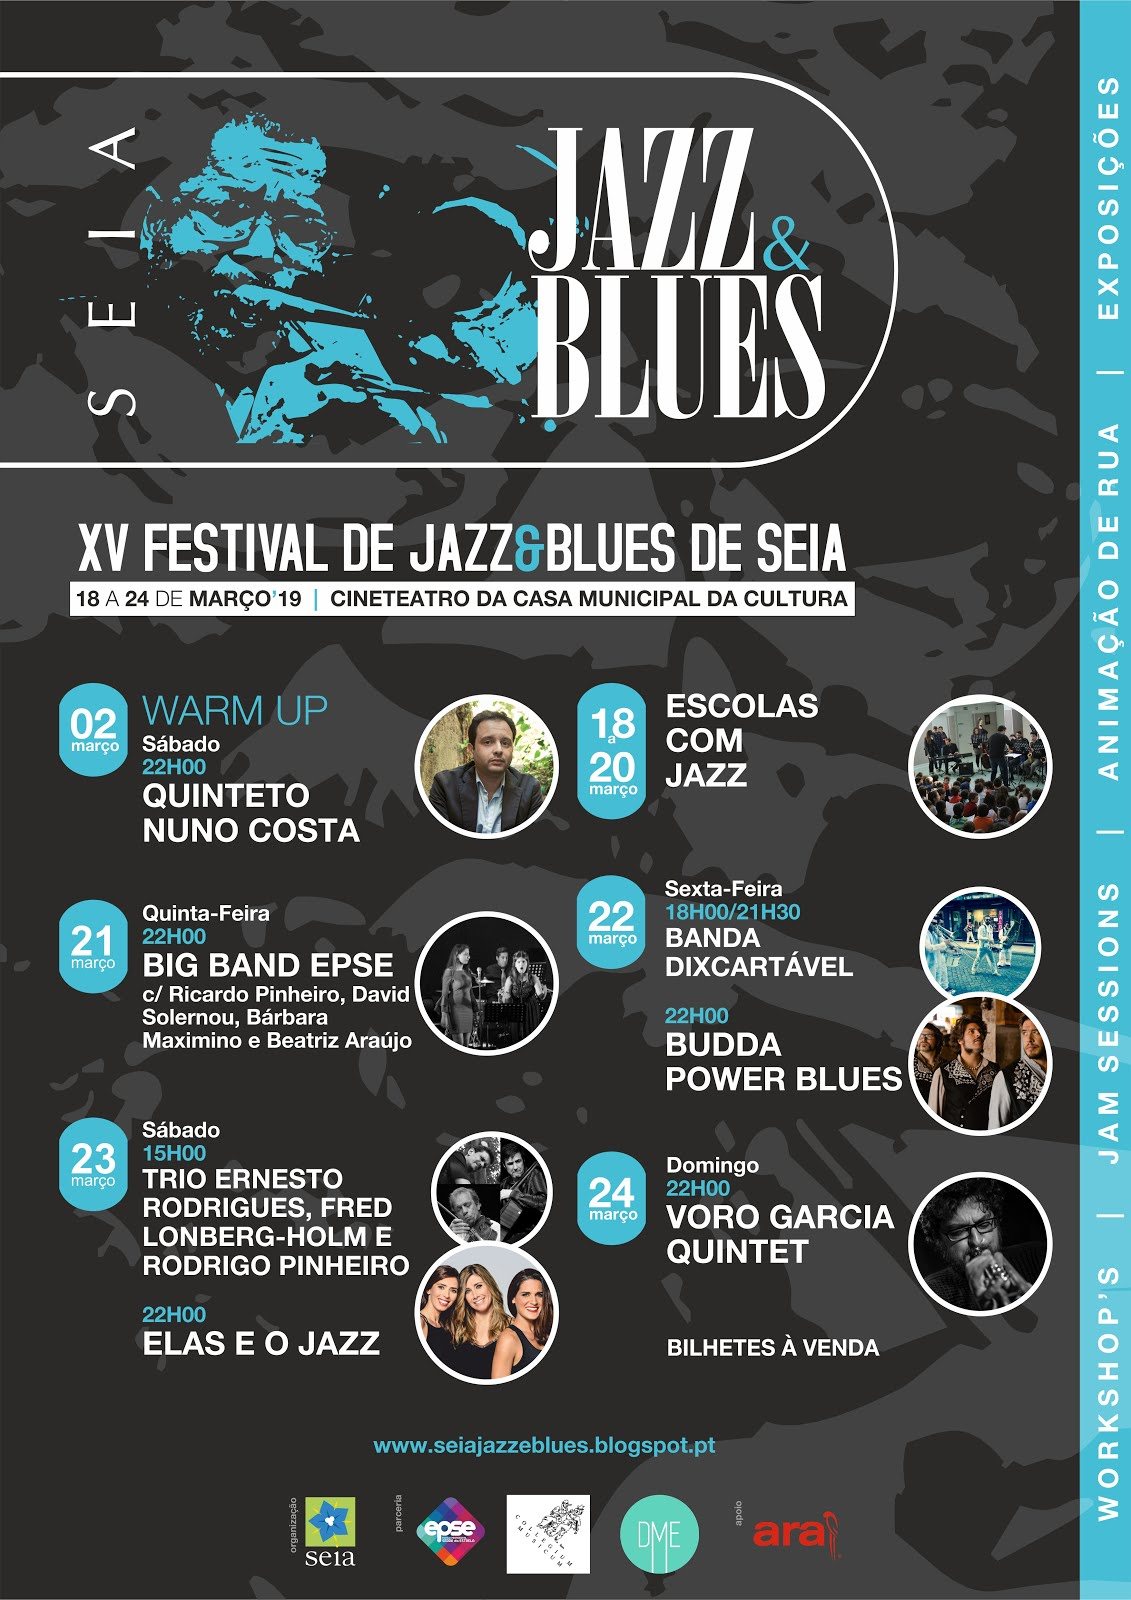 XV SEIA JAZZ & BLUES